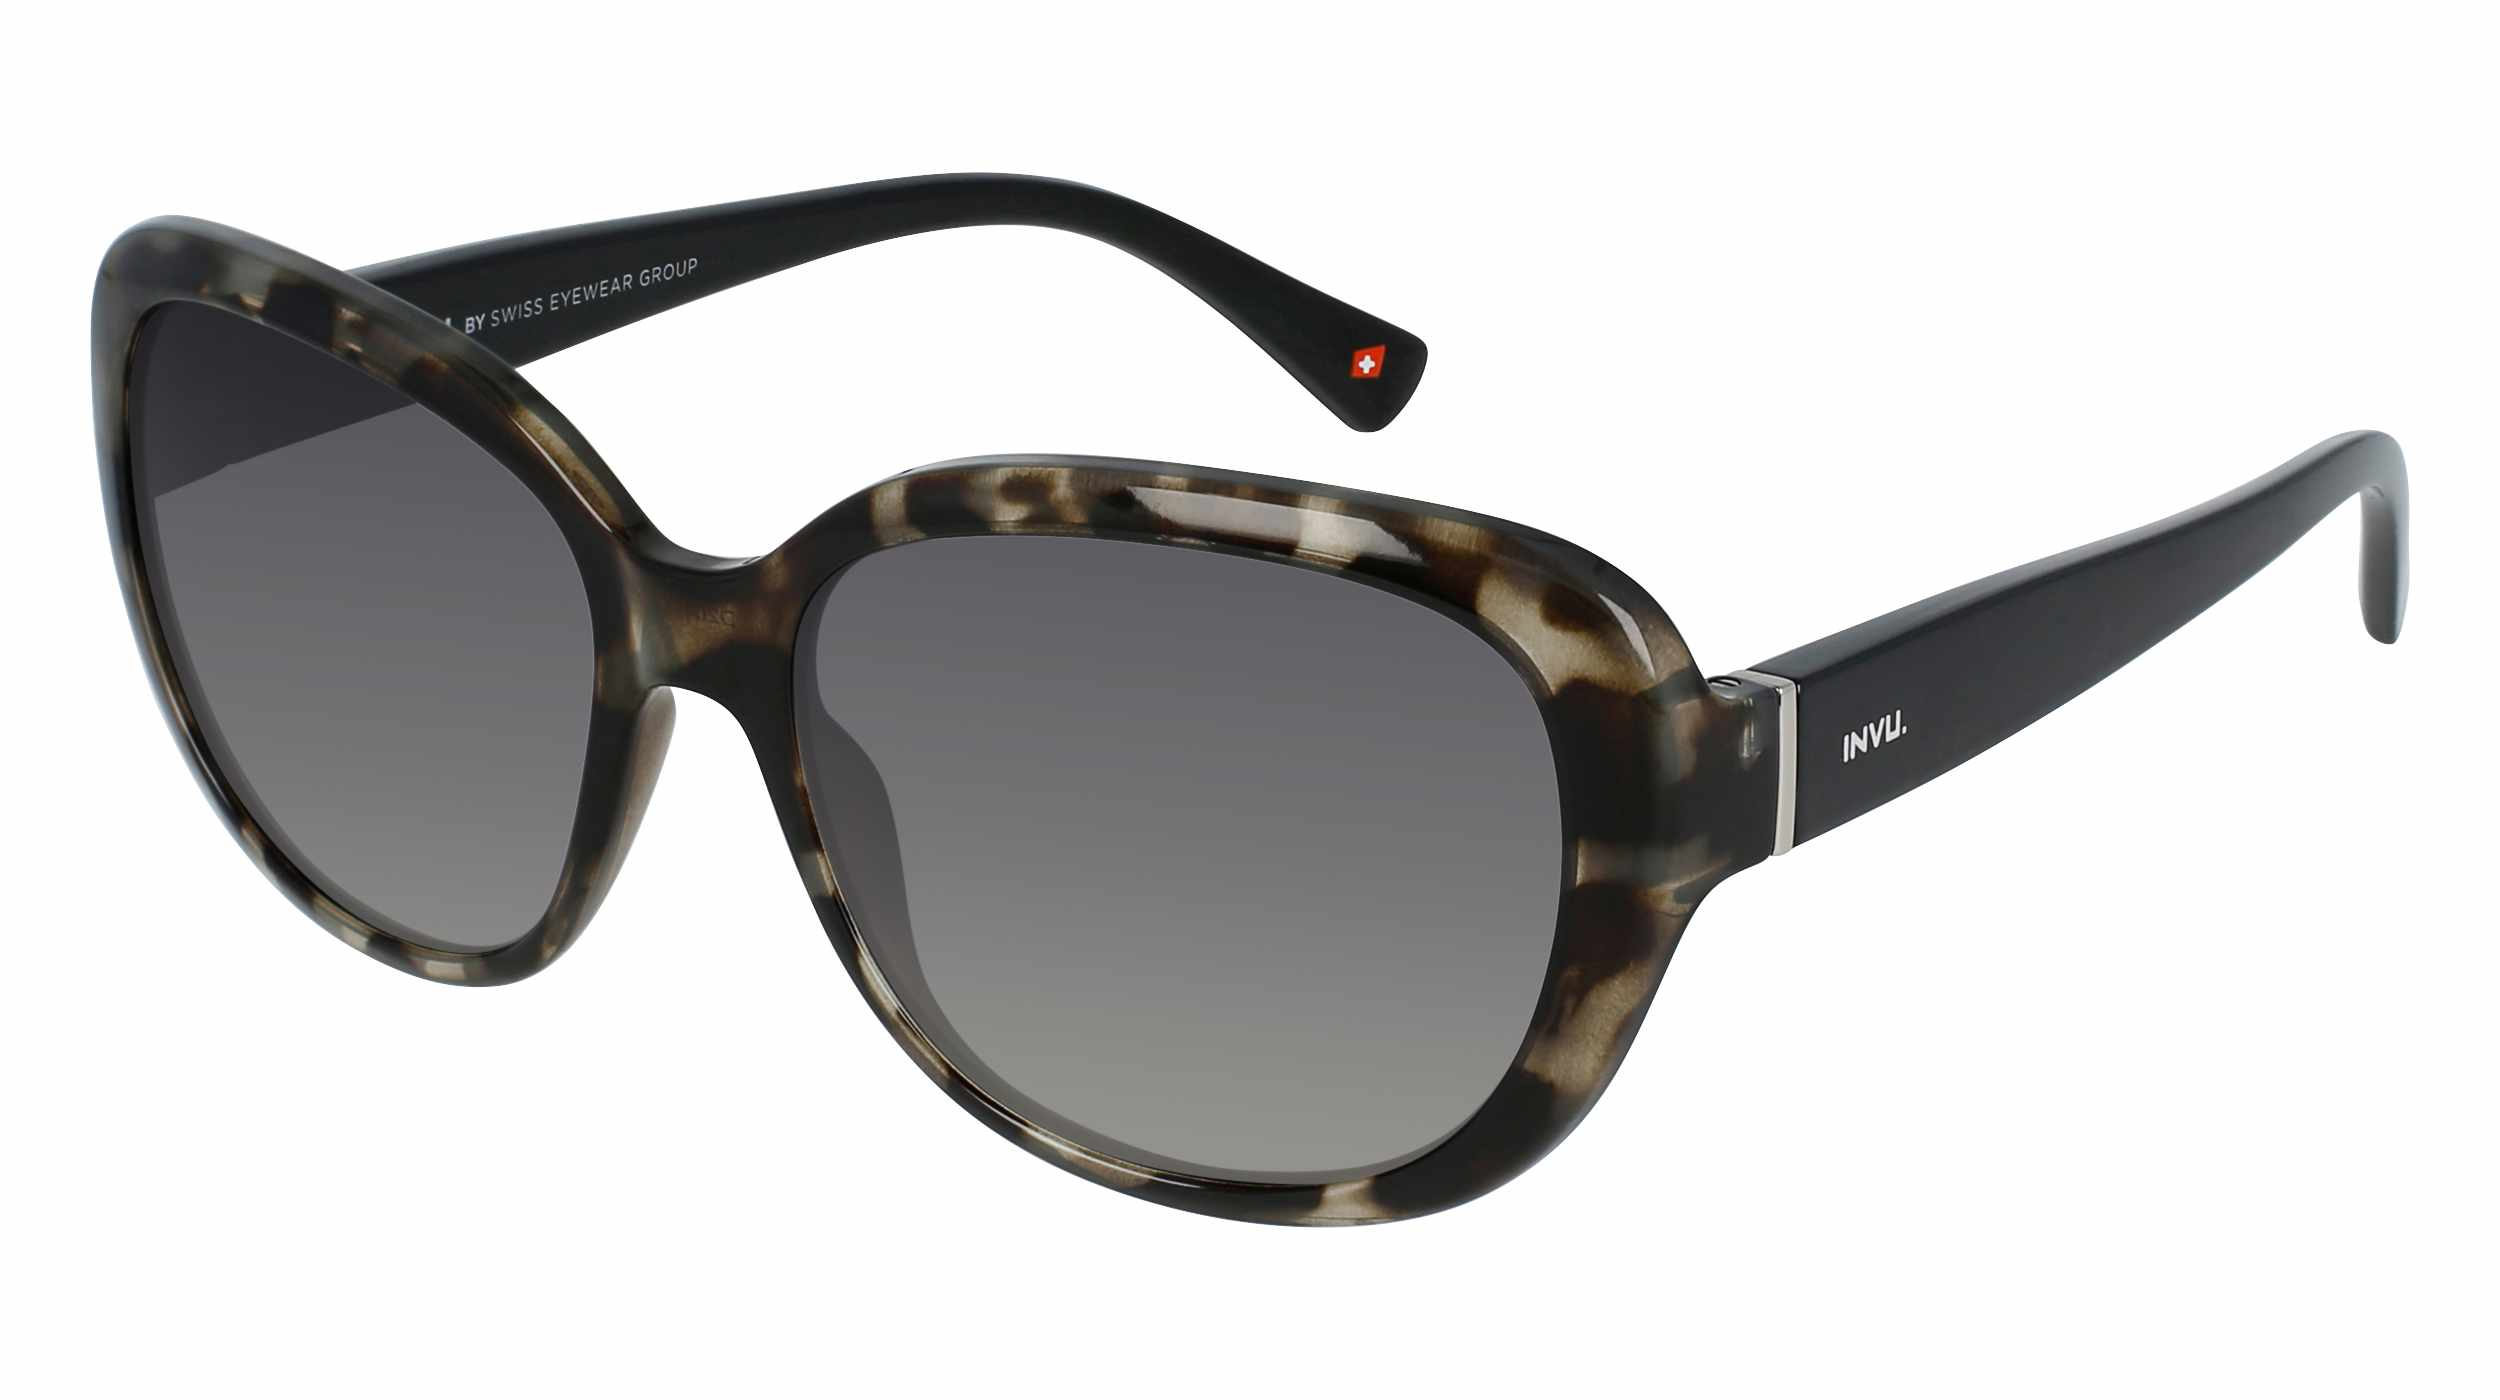 5th Avenue Dark Tortoise Black Gradient Smoke-Grey